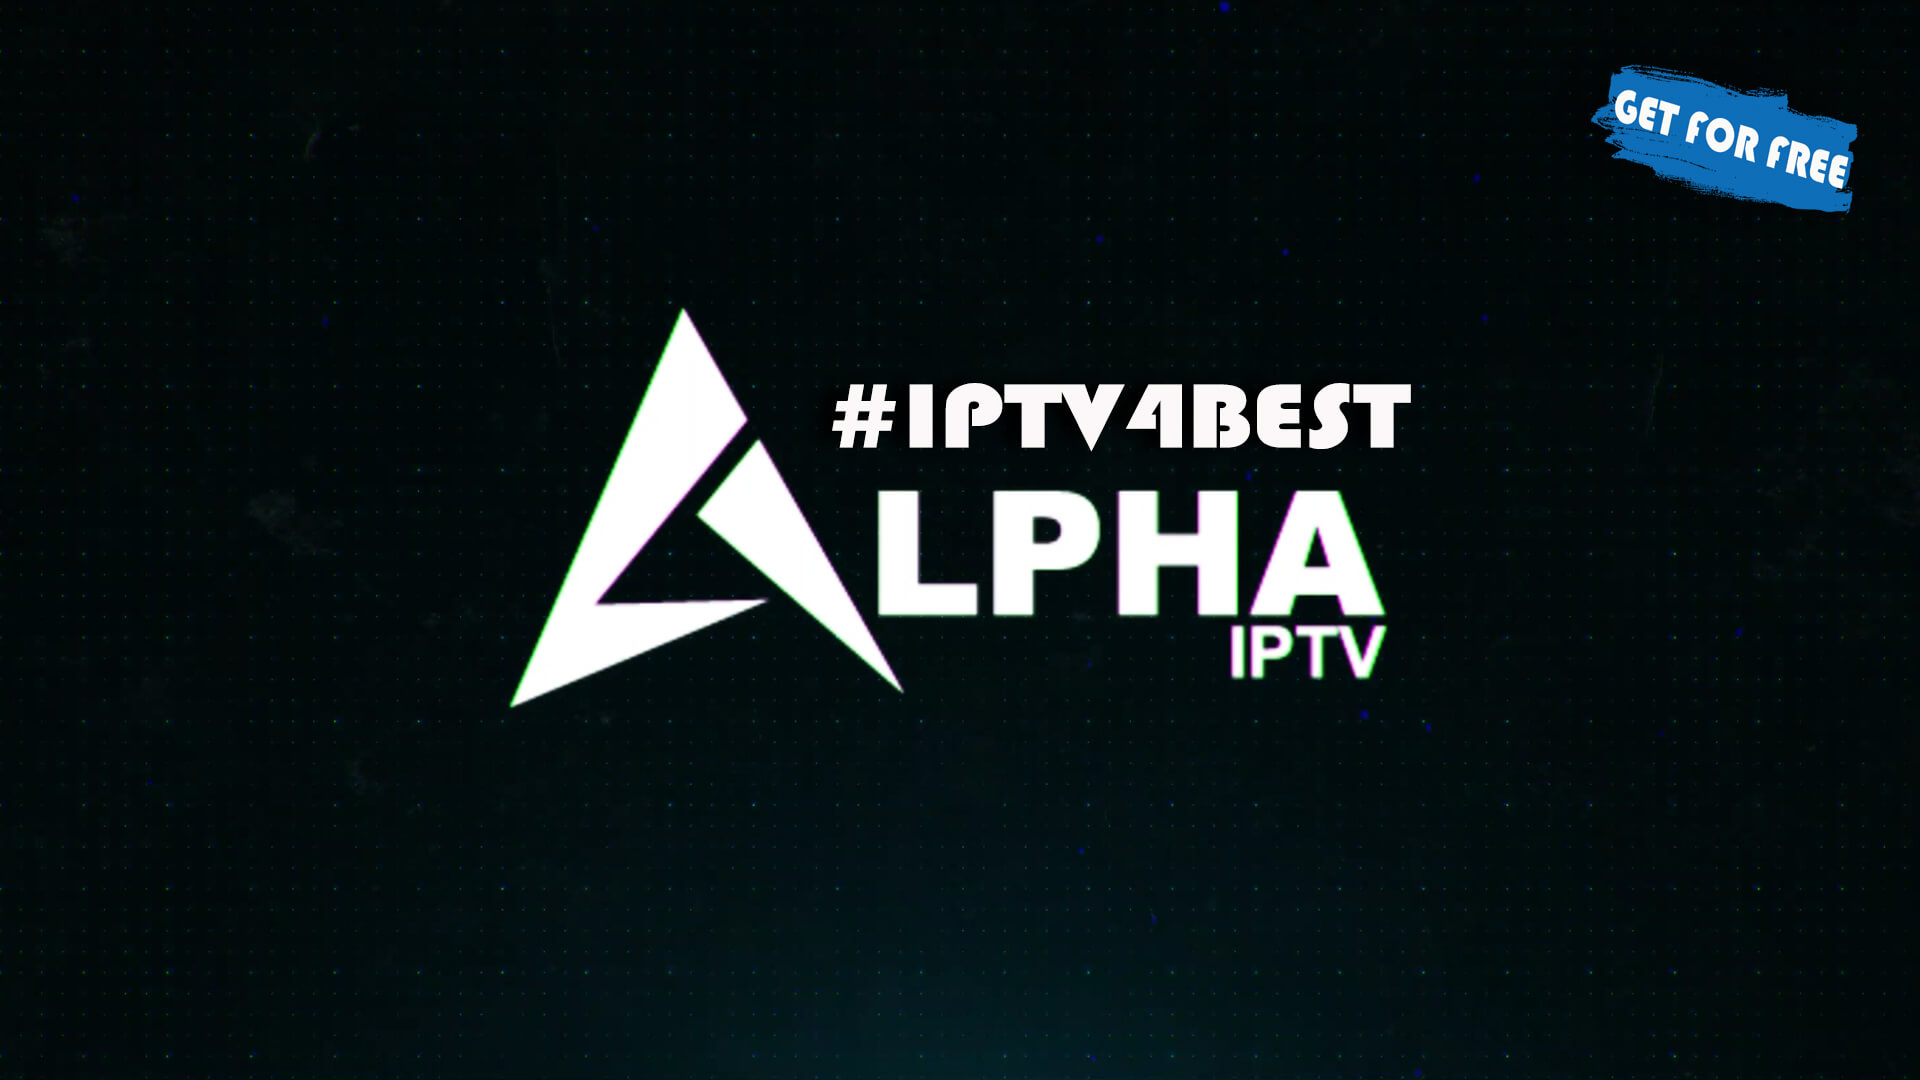 Alpha IPTv APK + Code Activation 2021 IPTv Android APK By IPTV4BEST